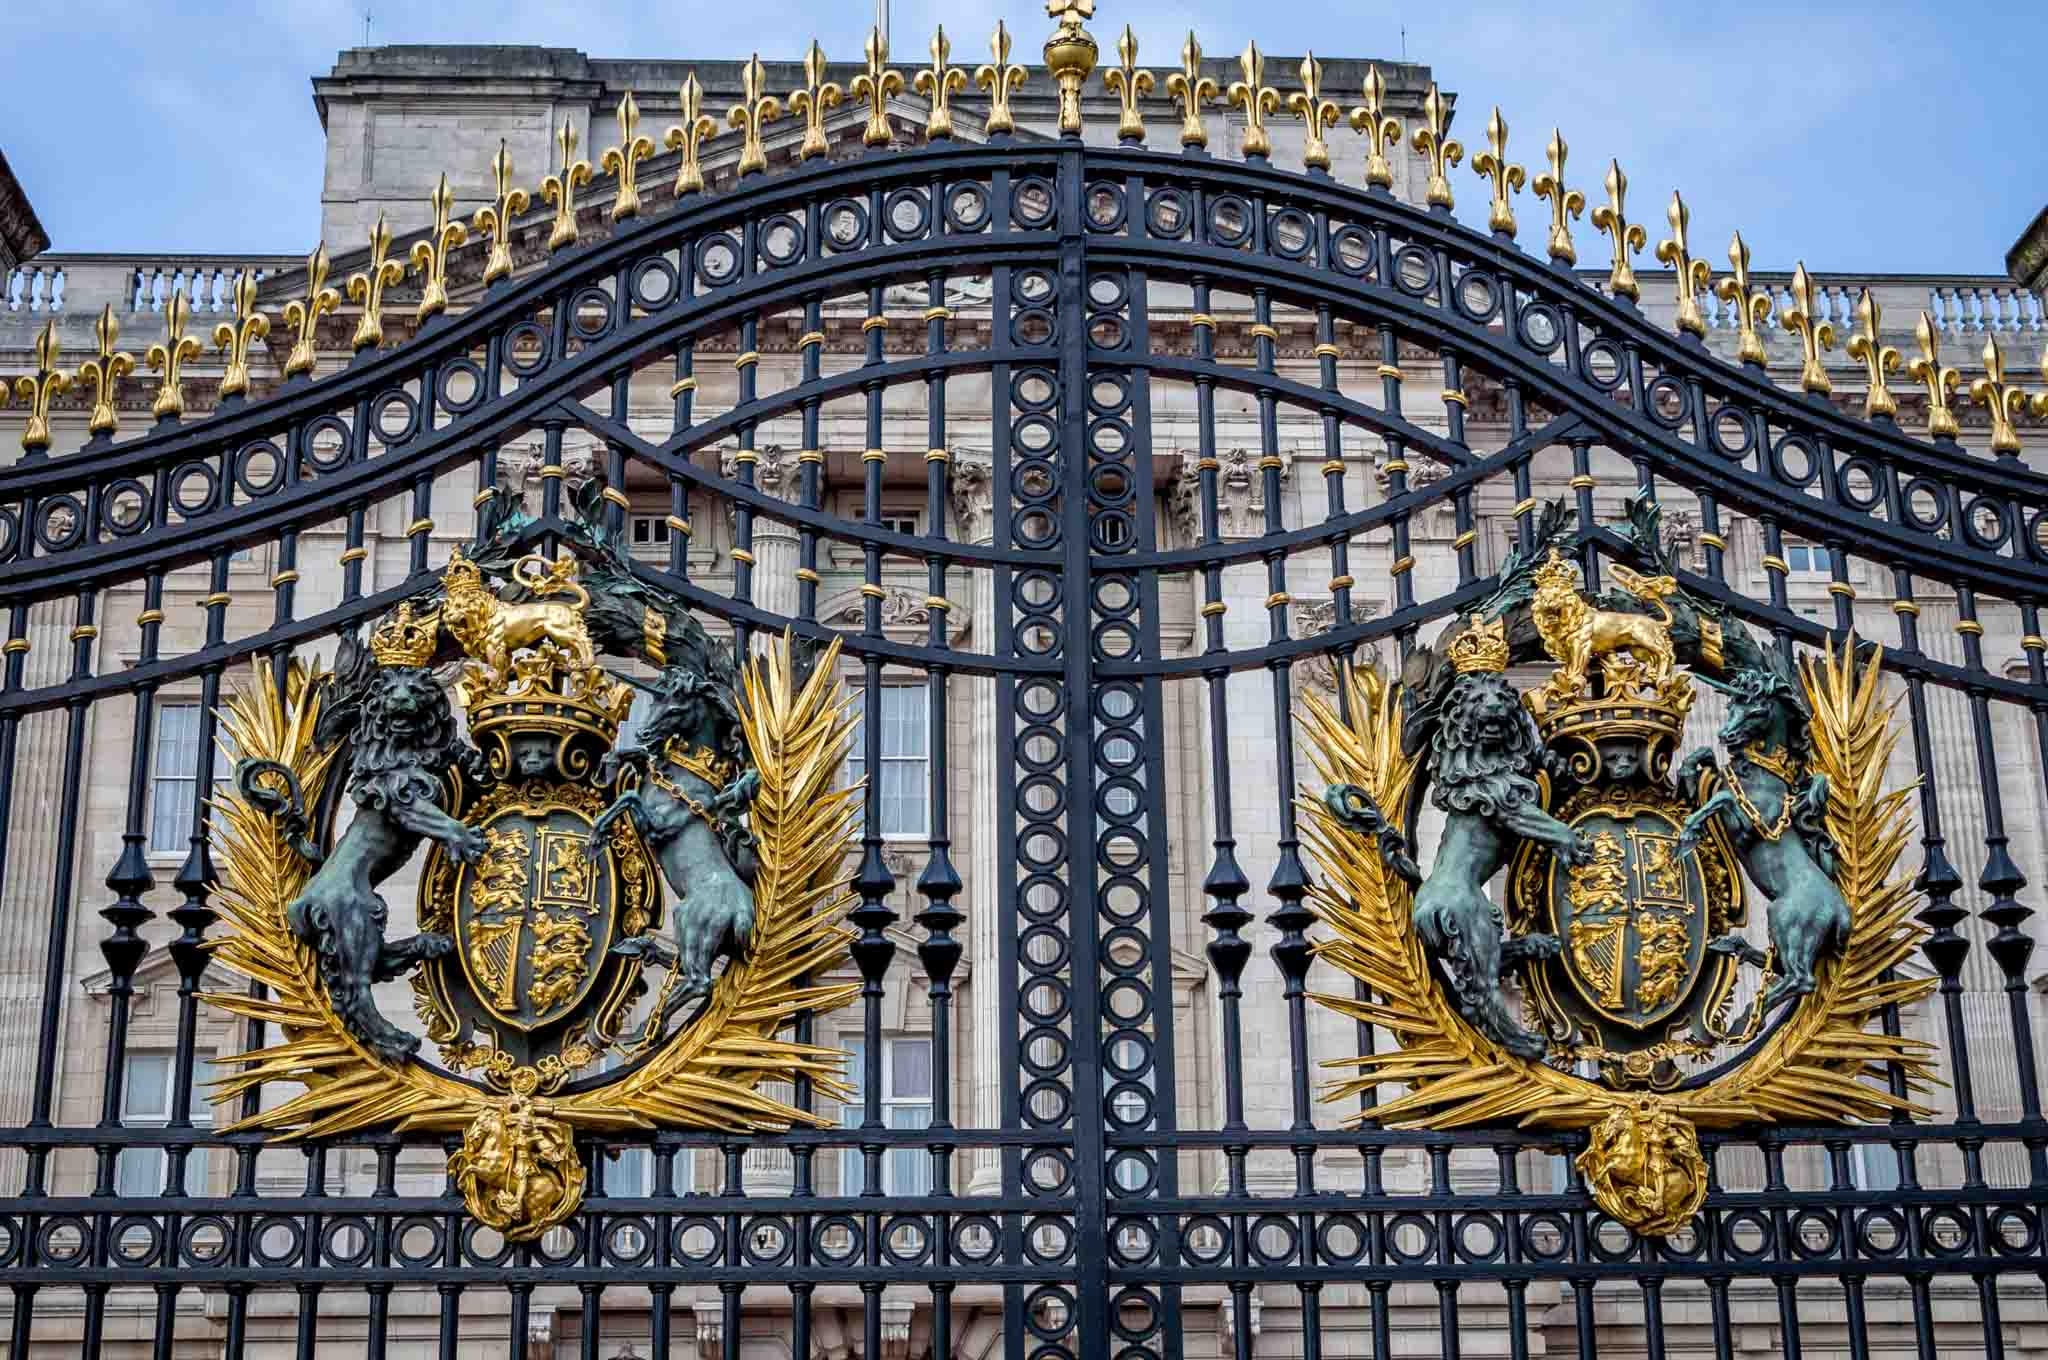 Buckingham Palace gates with crests showing lions and coat of arms